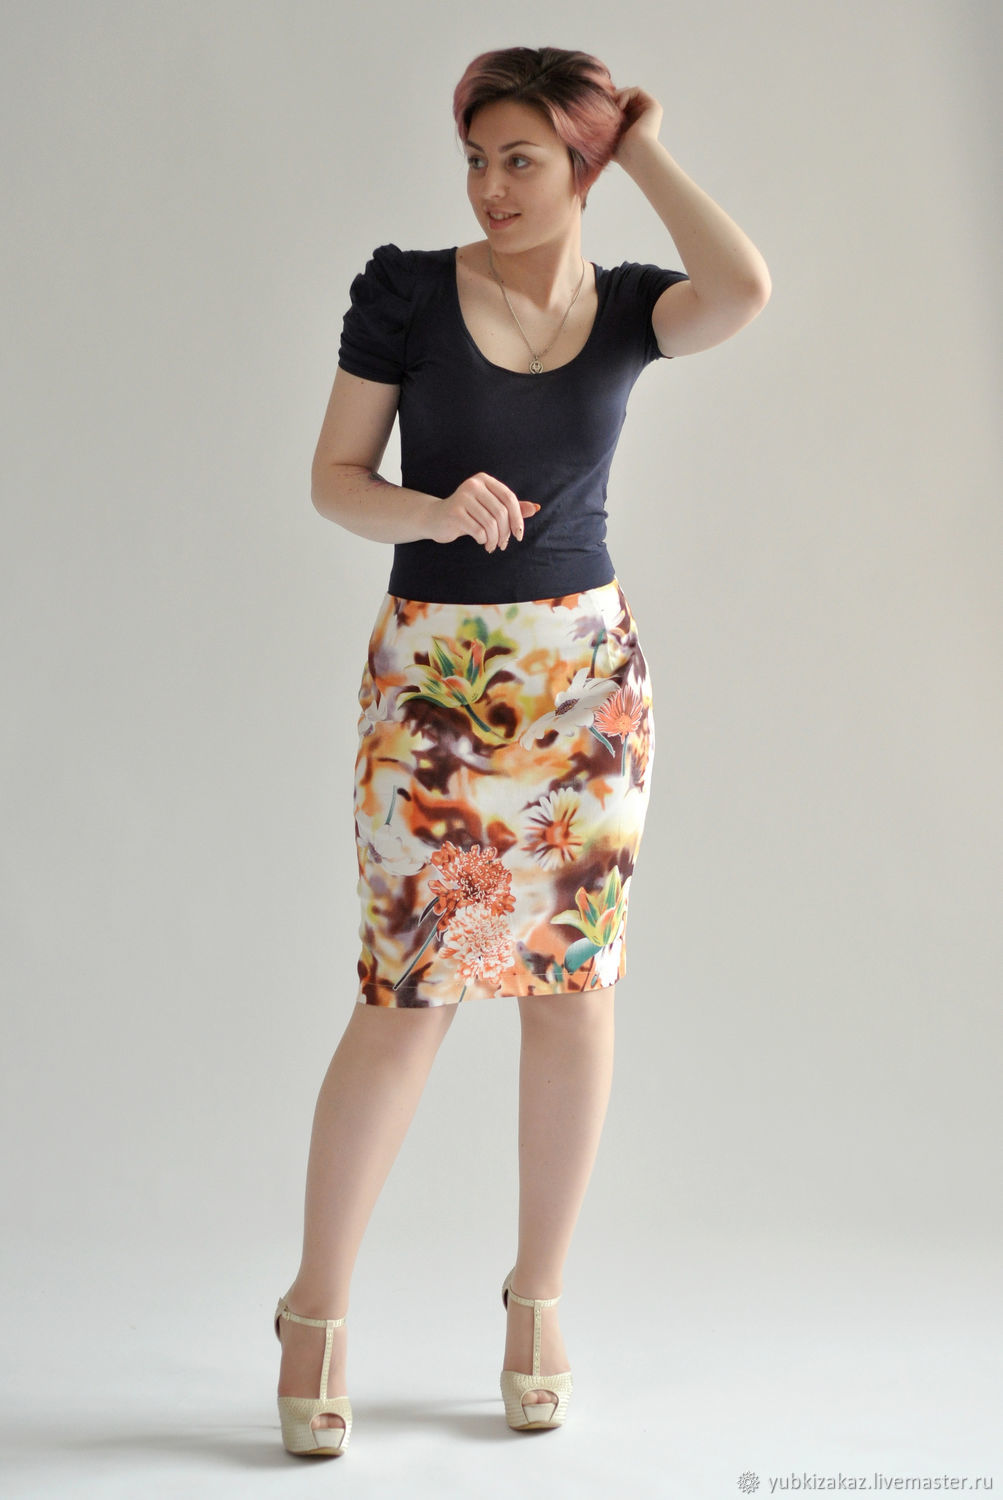 b75aa7e20 Skirt Summer Heat cotton – shop online on Livemaster with shipping ...